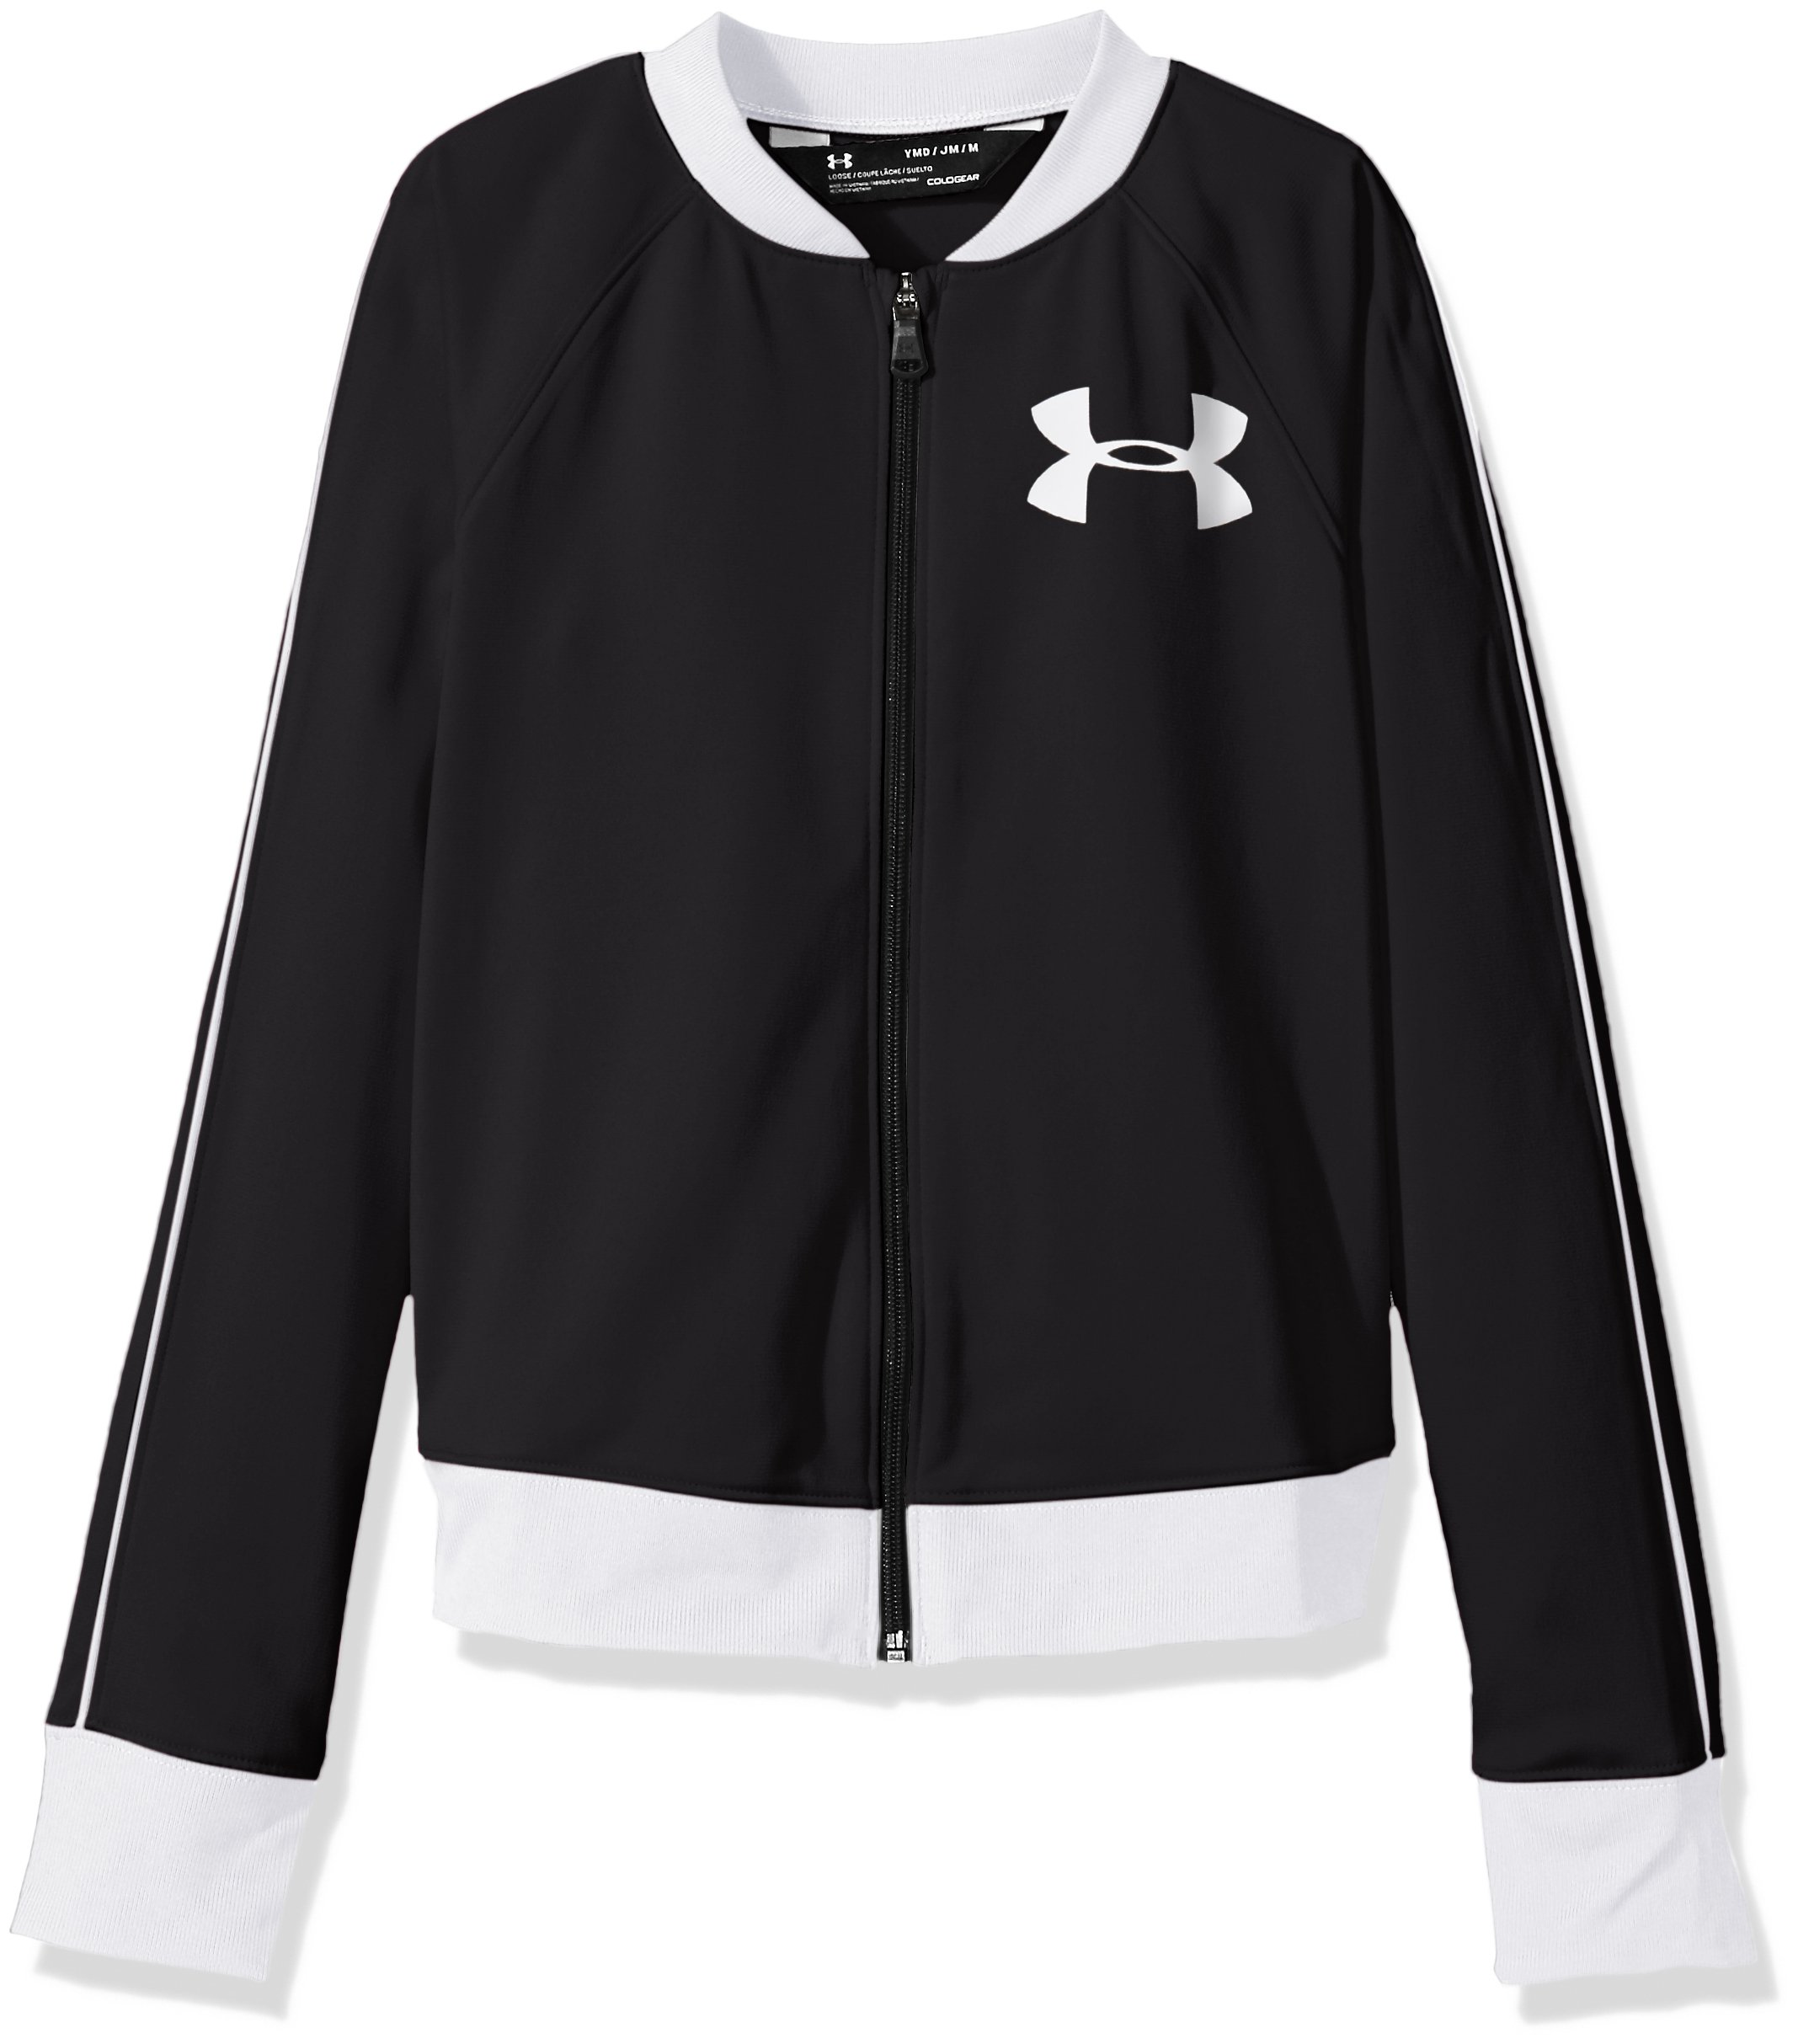 Under Armour Girls' Track Jacket,Black (001)/White, Youth Medium by Under Armour